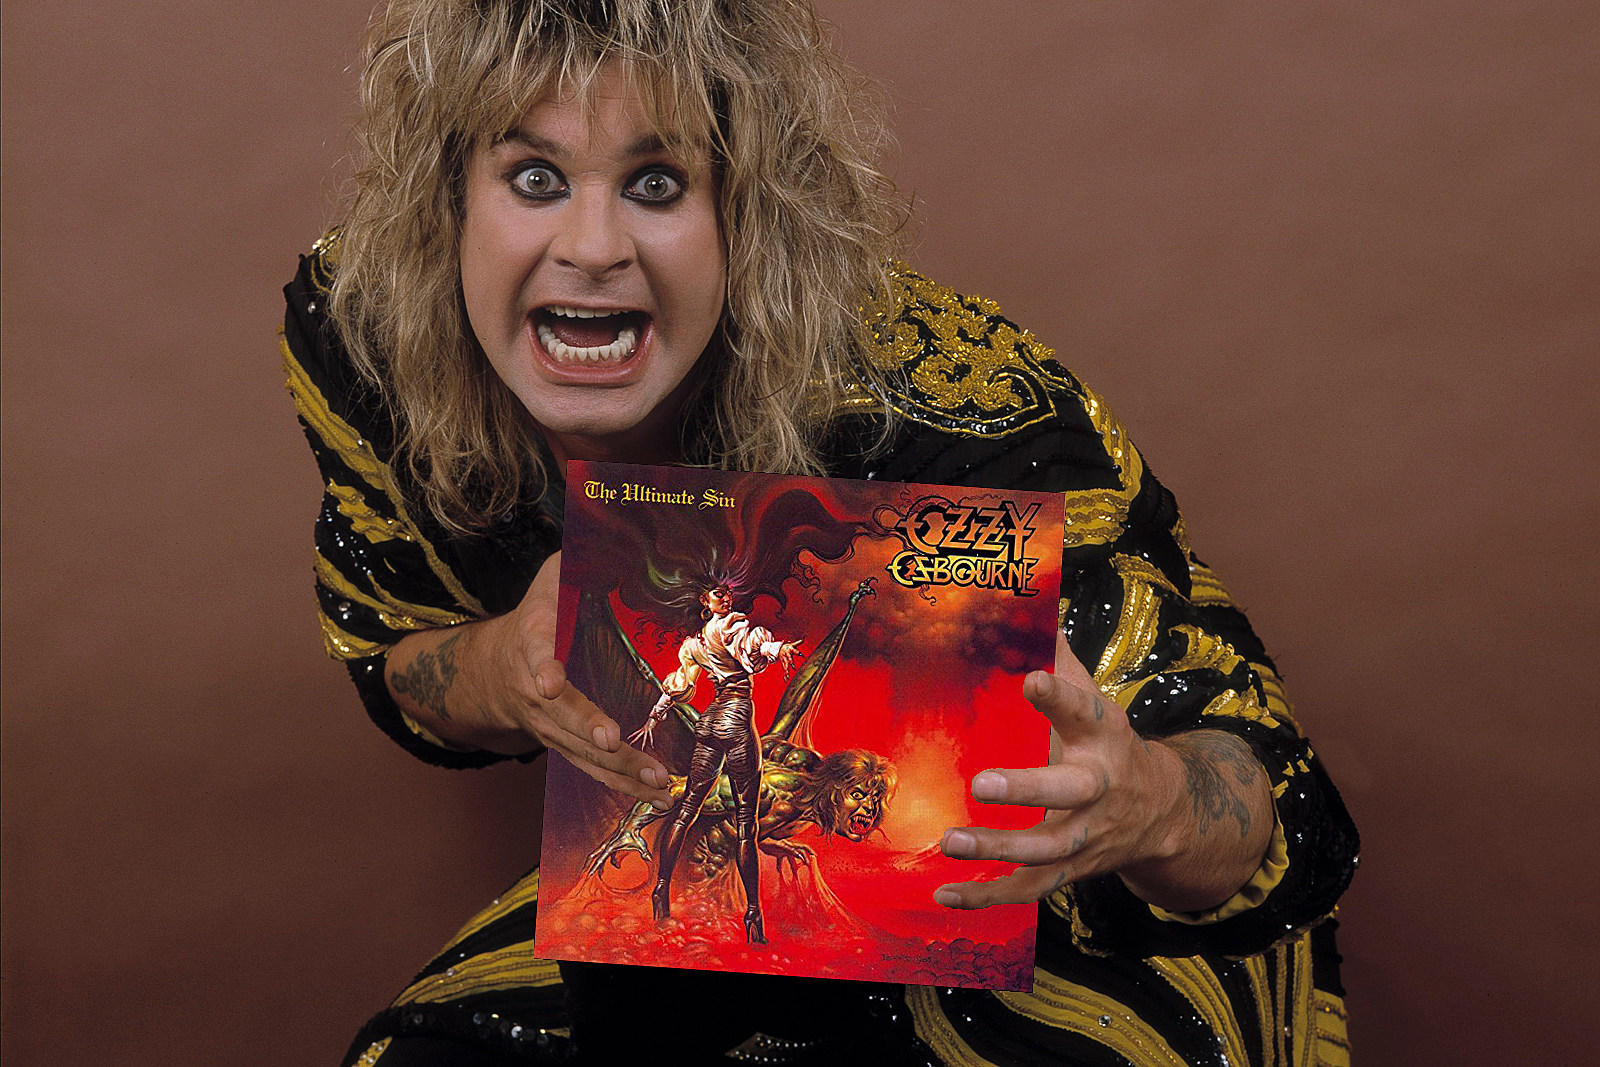 Is Ozzy Osbourne's 'The Ultimate Sin' Really That Bad?